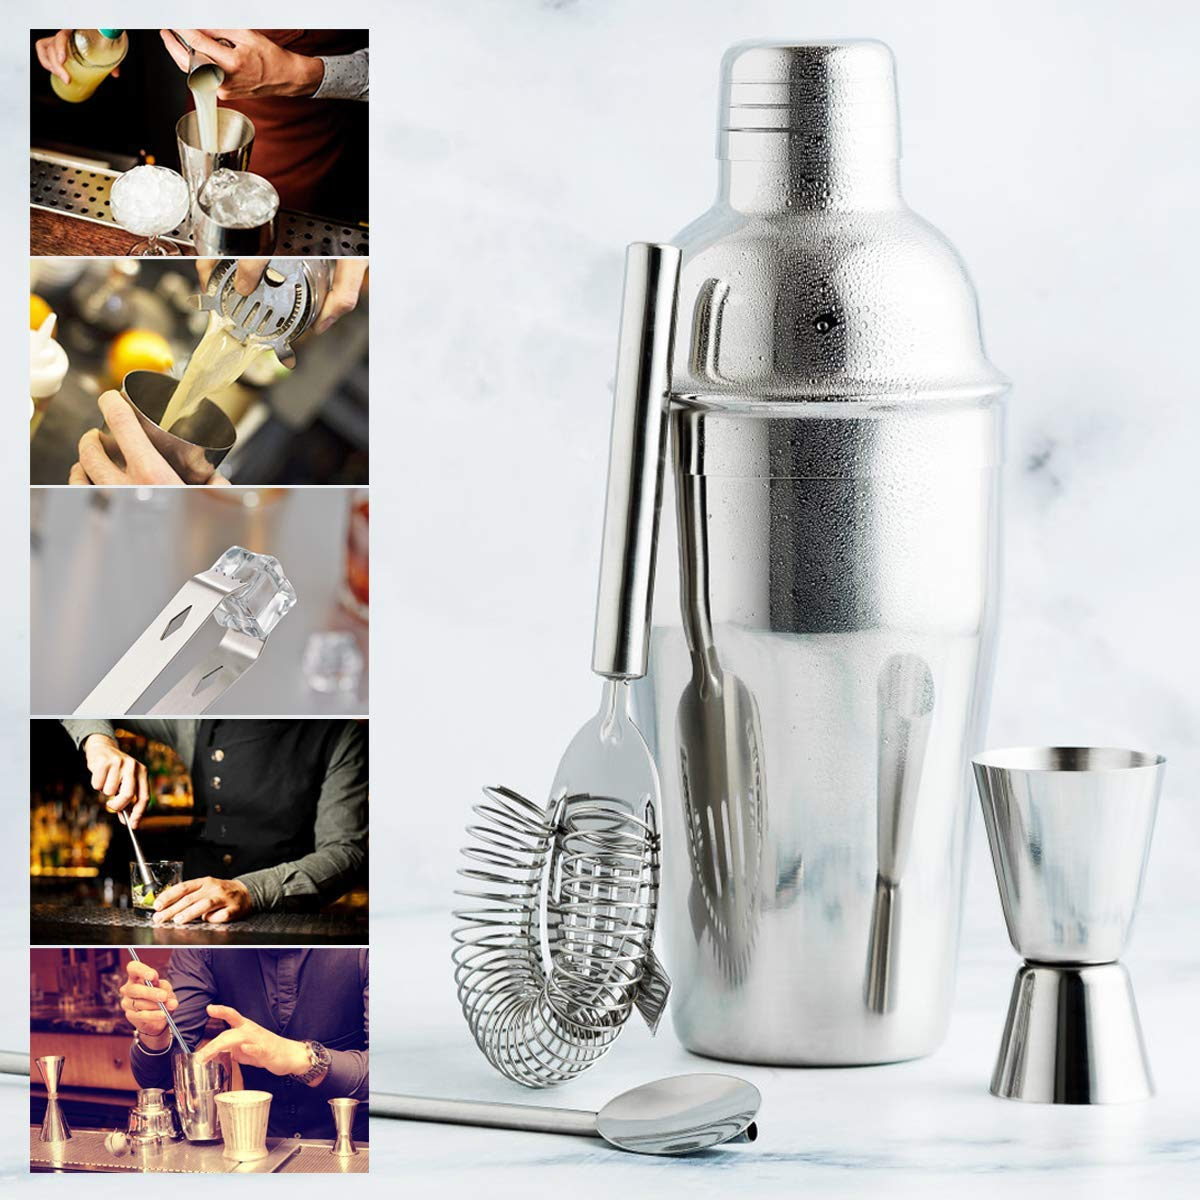 15 Piece Bartender Kit Cocktail Shaker Set with Stand: Home Bar Tools Set - Shaker with Strainer, Muddler, Jigger, Stand, Ice Thong and More - with Cocktail Recipes - Cocktail Shaker Stainless Steel by SUPERSUN (Image #3)